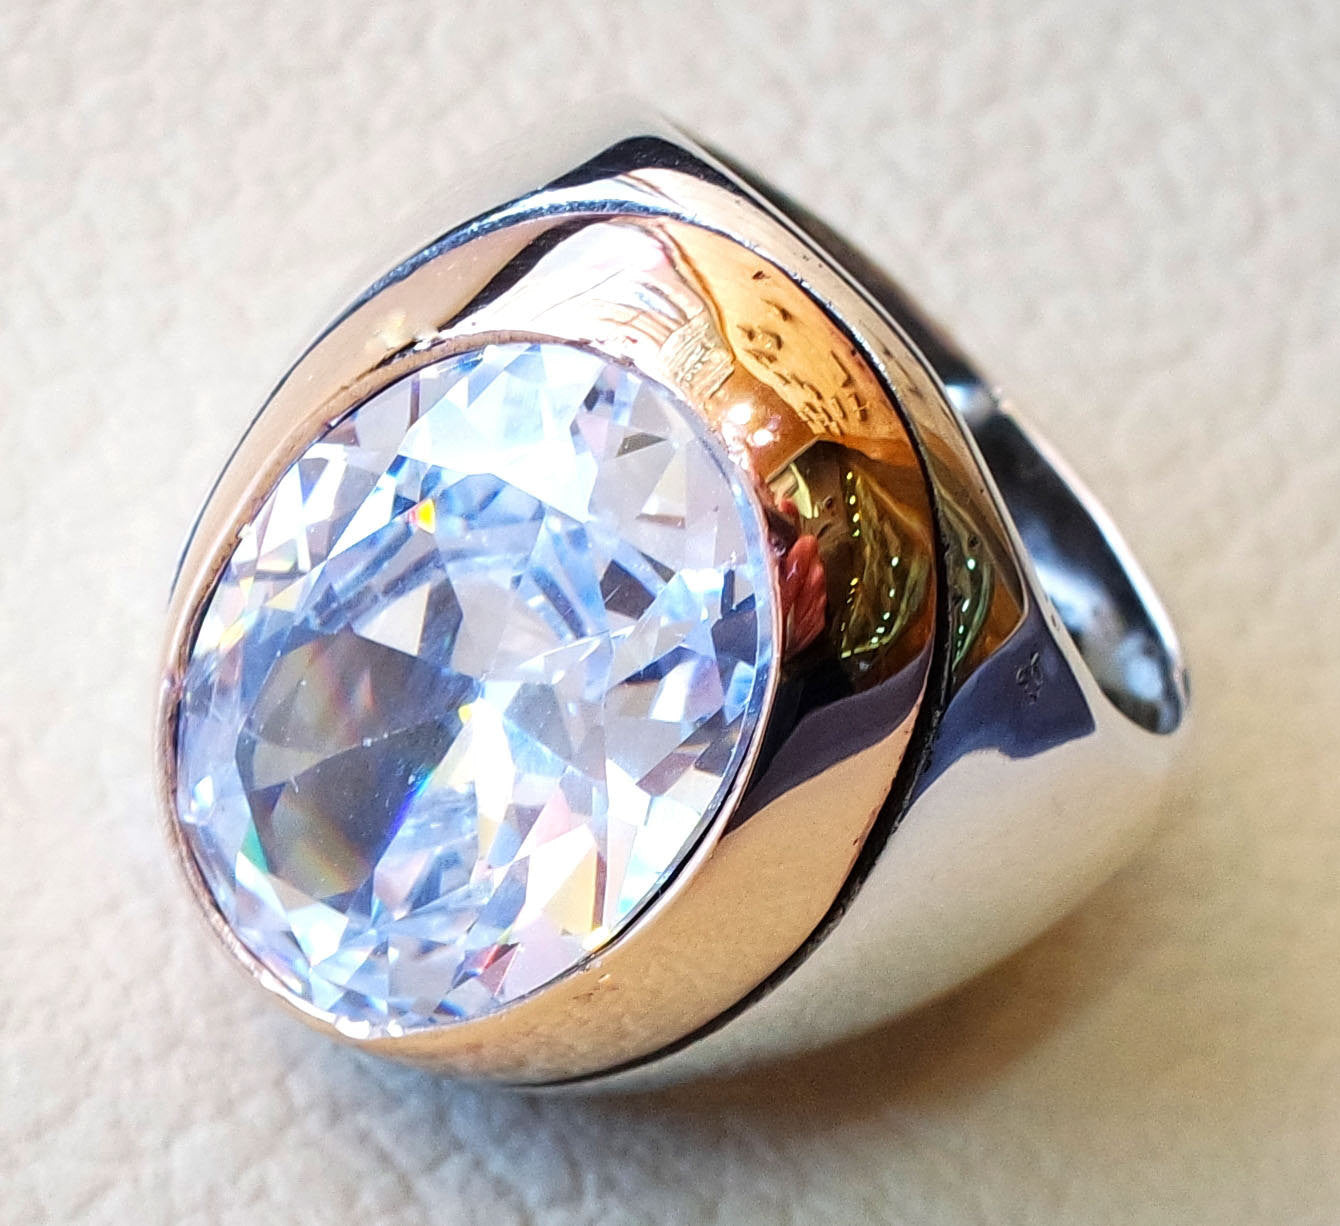 diamond synthetic stone high quality white color cubic zircon huge men ring sterling silver 925 any size bronze frame heavy jewelry